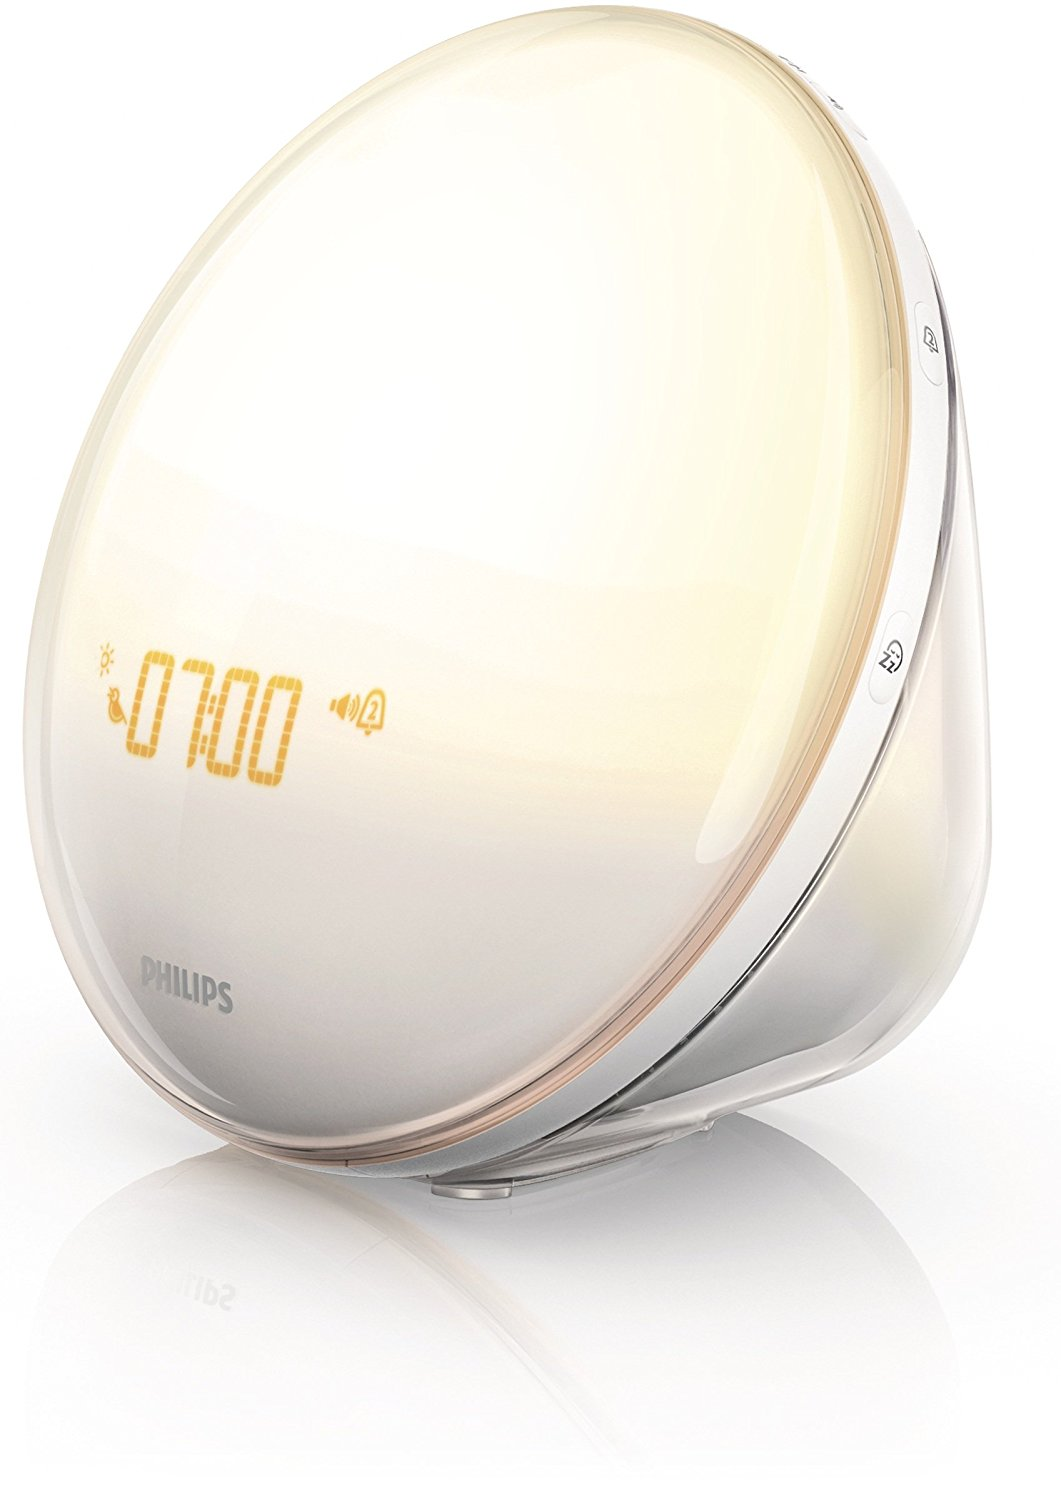 Gifts for Impossible People | Philips Wake-Up Light at Amazon